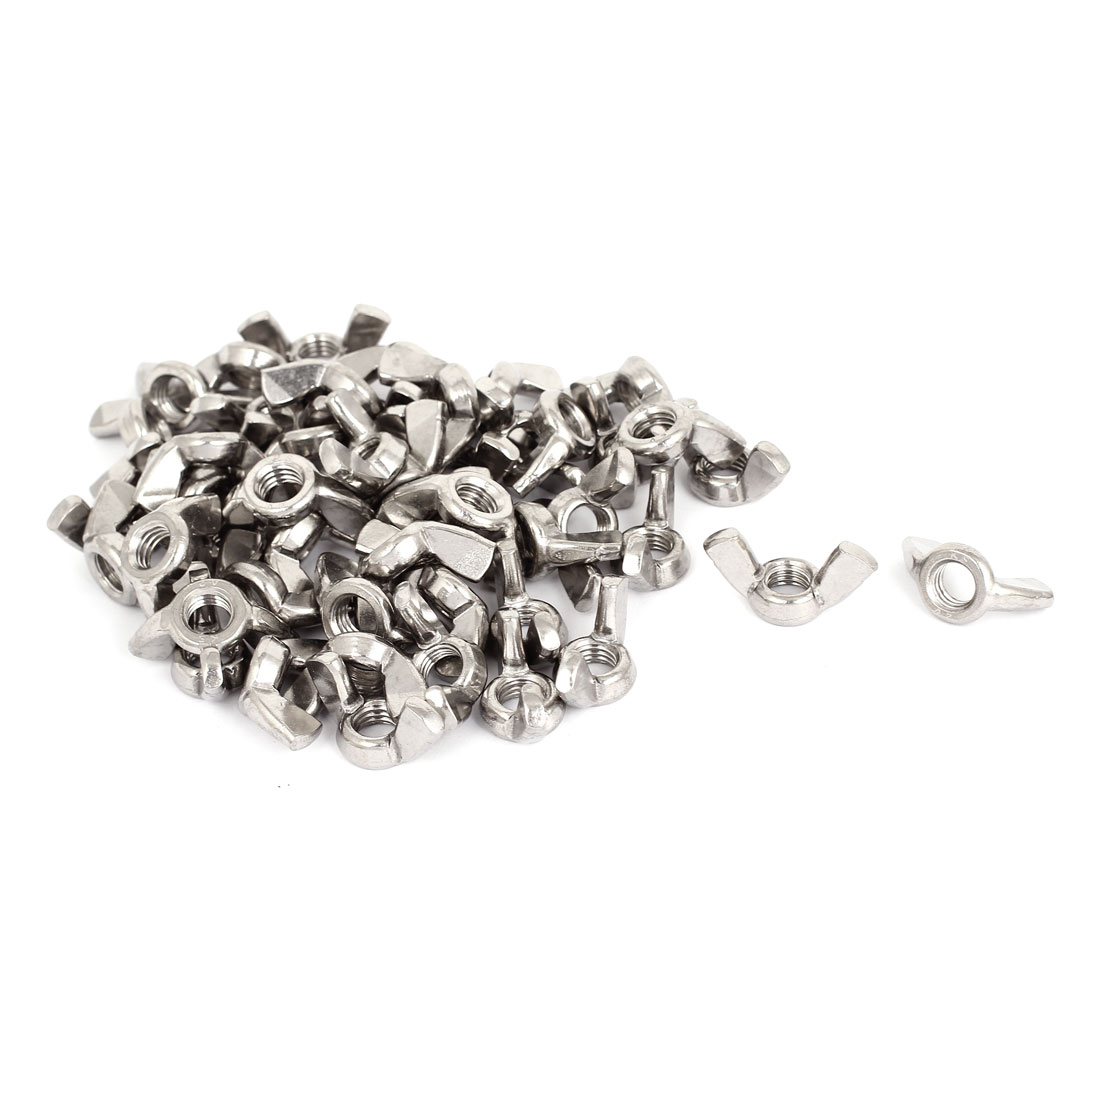 M10 Female Thread Stainless Steel Wingnut Butterfly Wing Nuts Silver Tone 50pcs